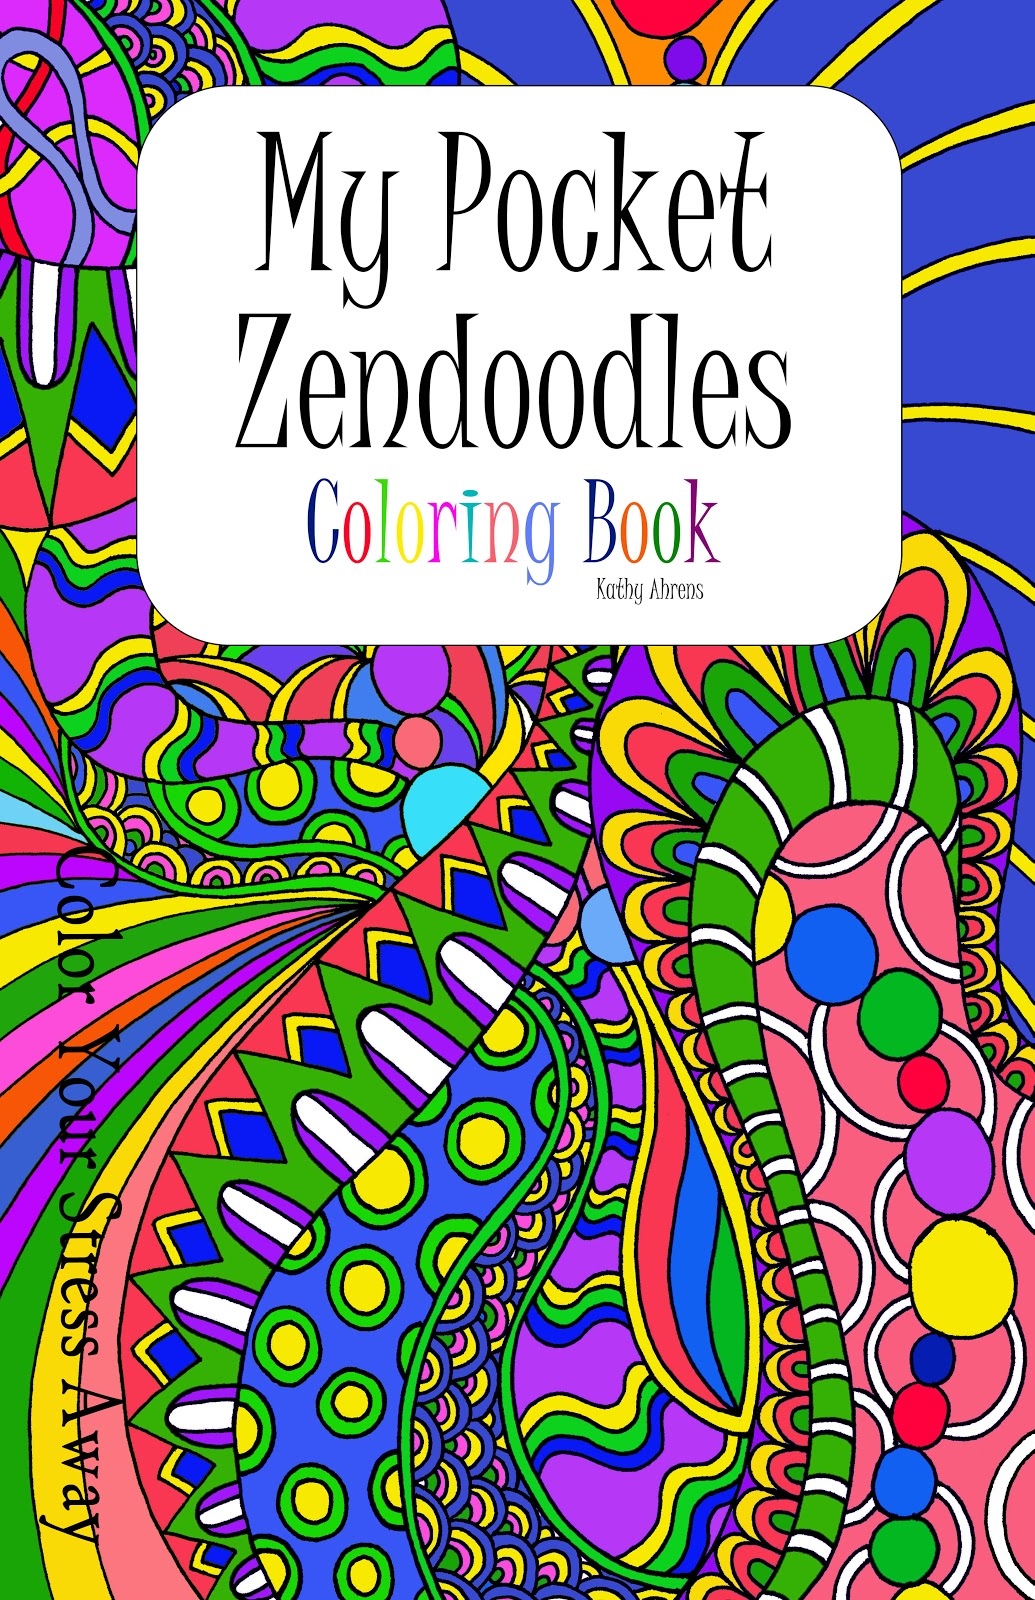 Thats All You Have To Do Be Eligible Win One Of These Beautiful Coloring Books Monthly On The 5th Every Month I Will A Drawing For At Least